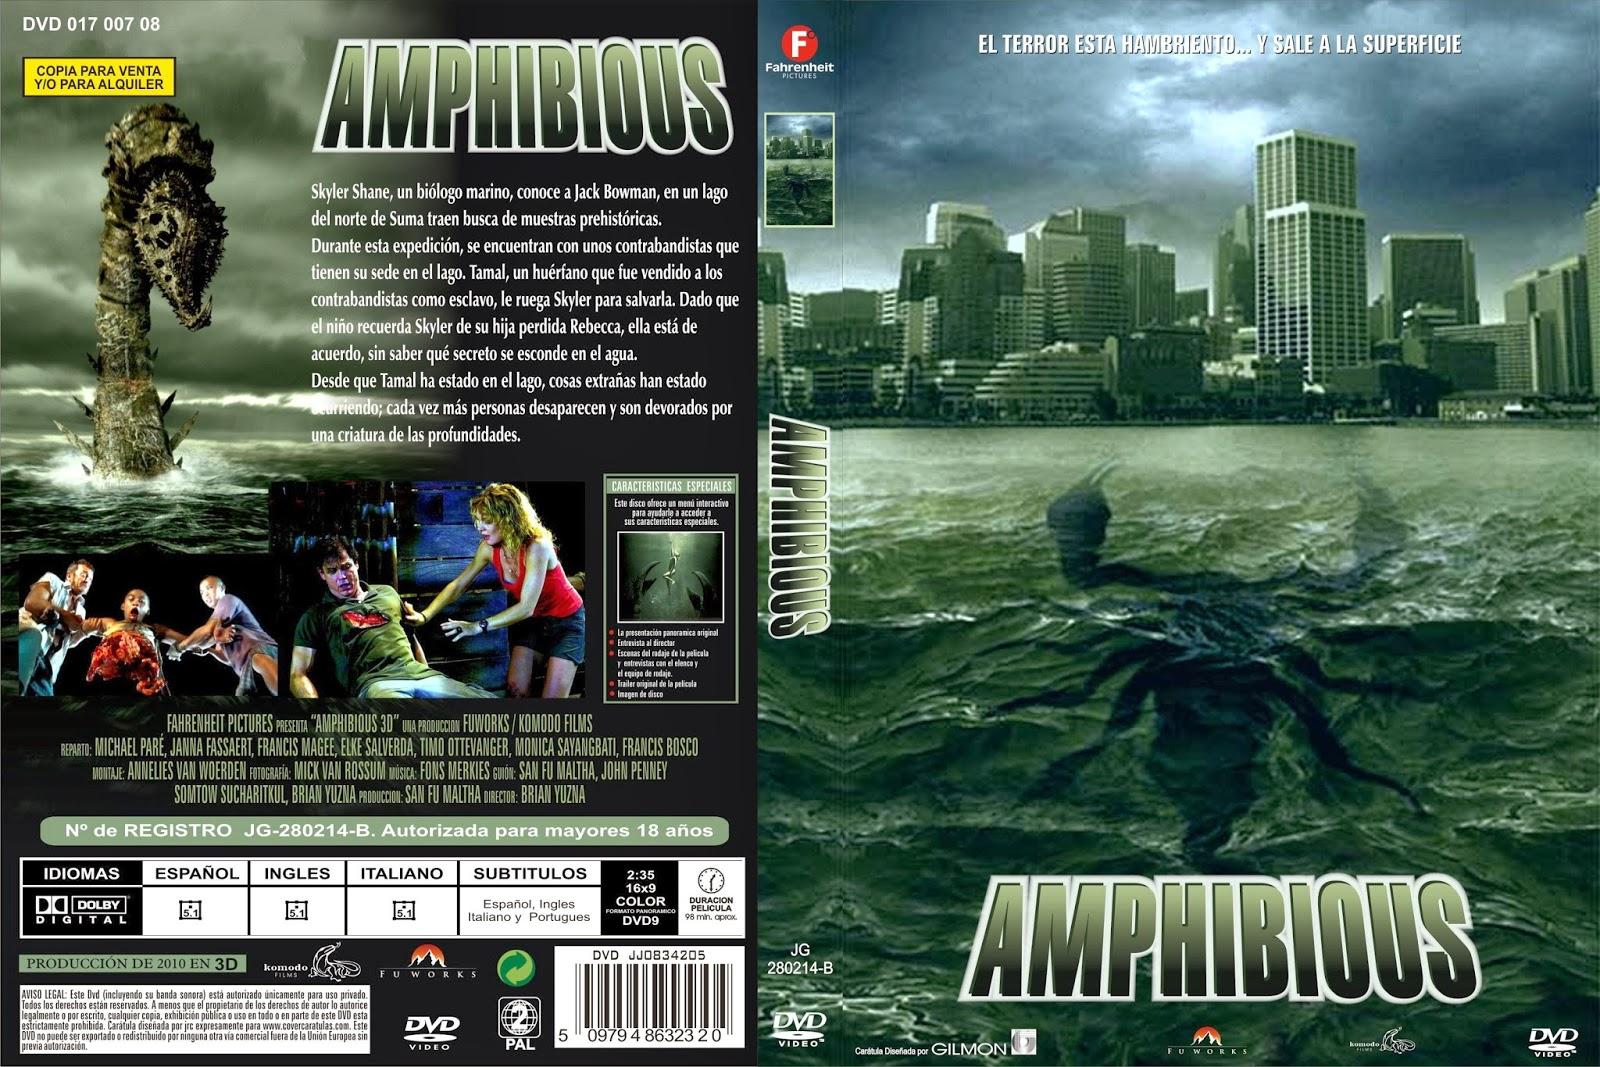 Amphibious creature of the deep full movie download